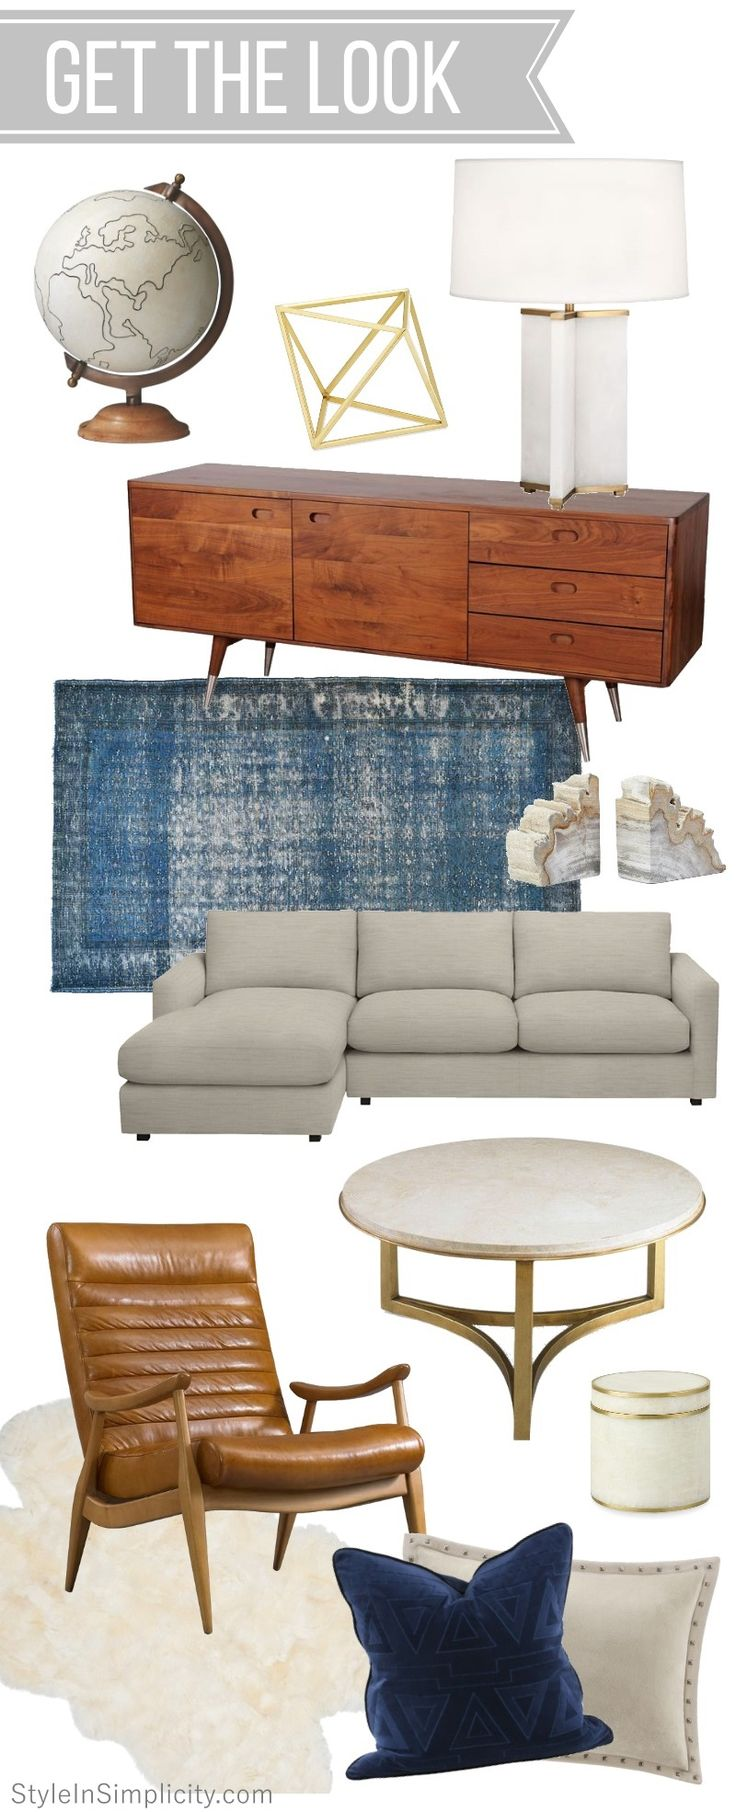 Great Get The Look // Mid Century Modern Inspired Living Room EDesign Via  StyleInSimplicity.